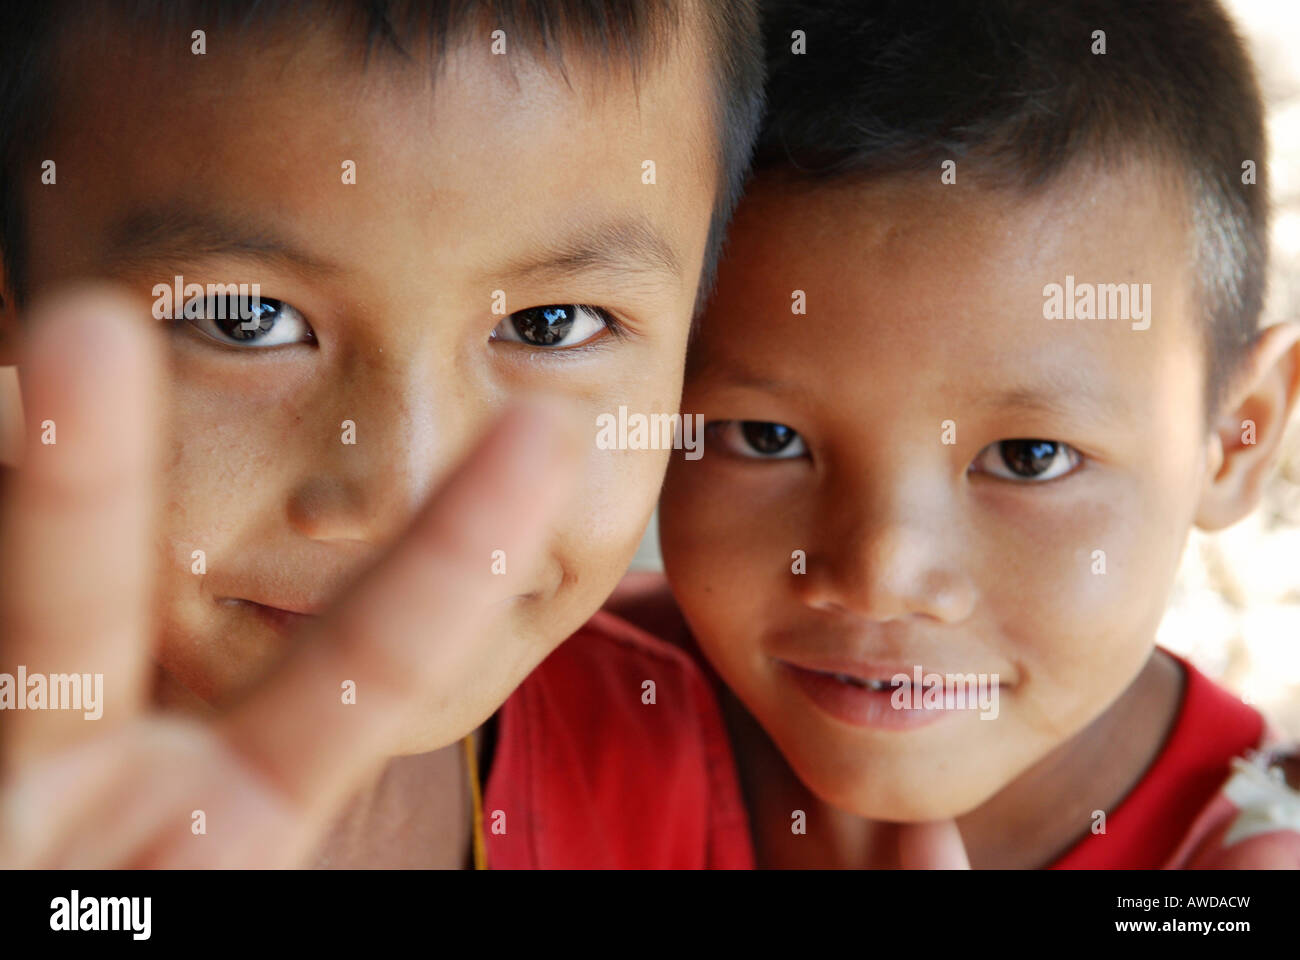 Boys showing victory salute, Kyunt Phan village, IDP-Area bordering Thailand near Maesot, Birma - Stock Image